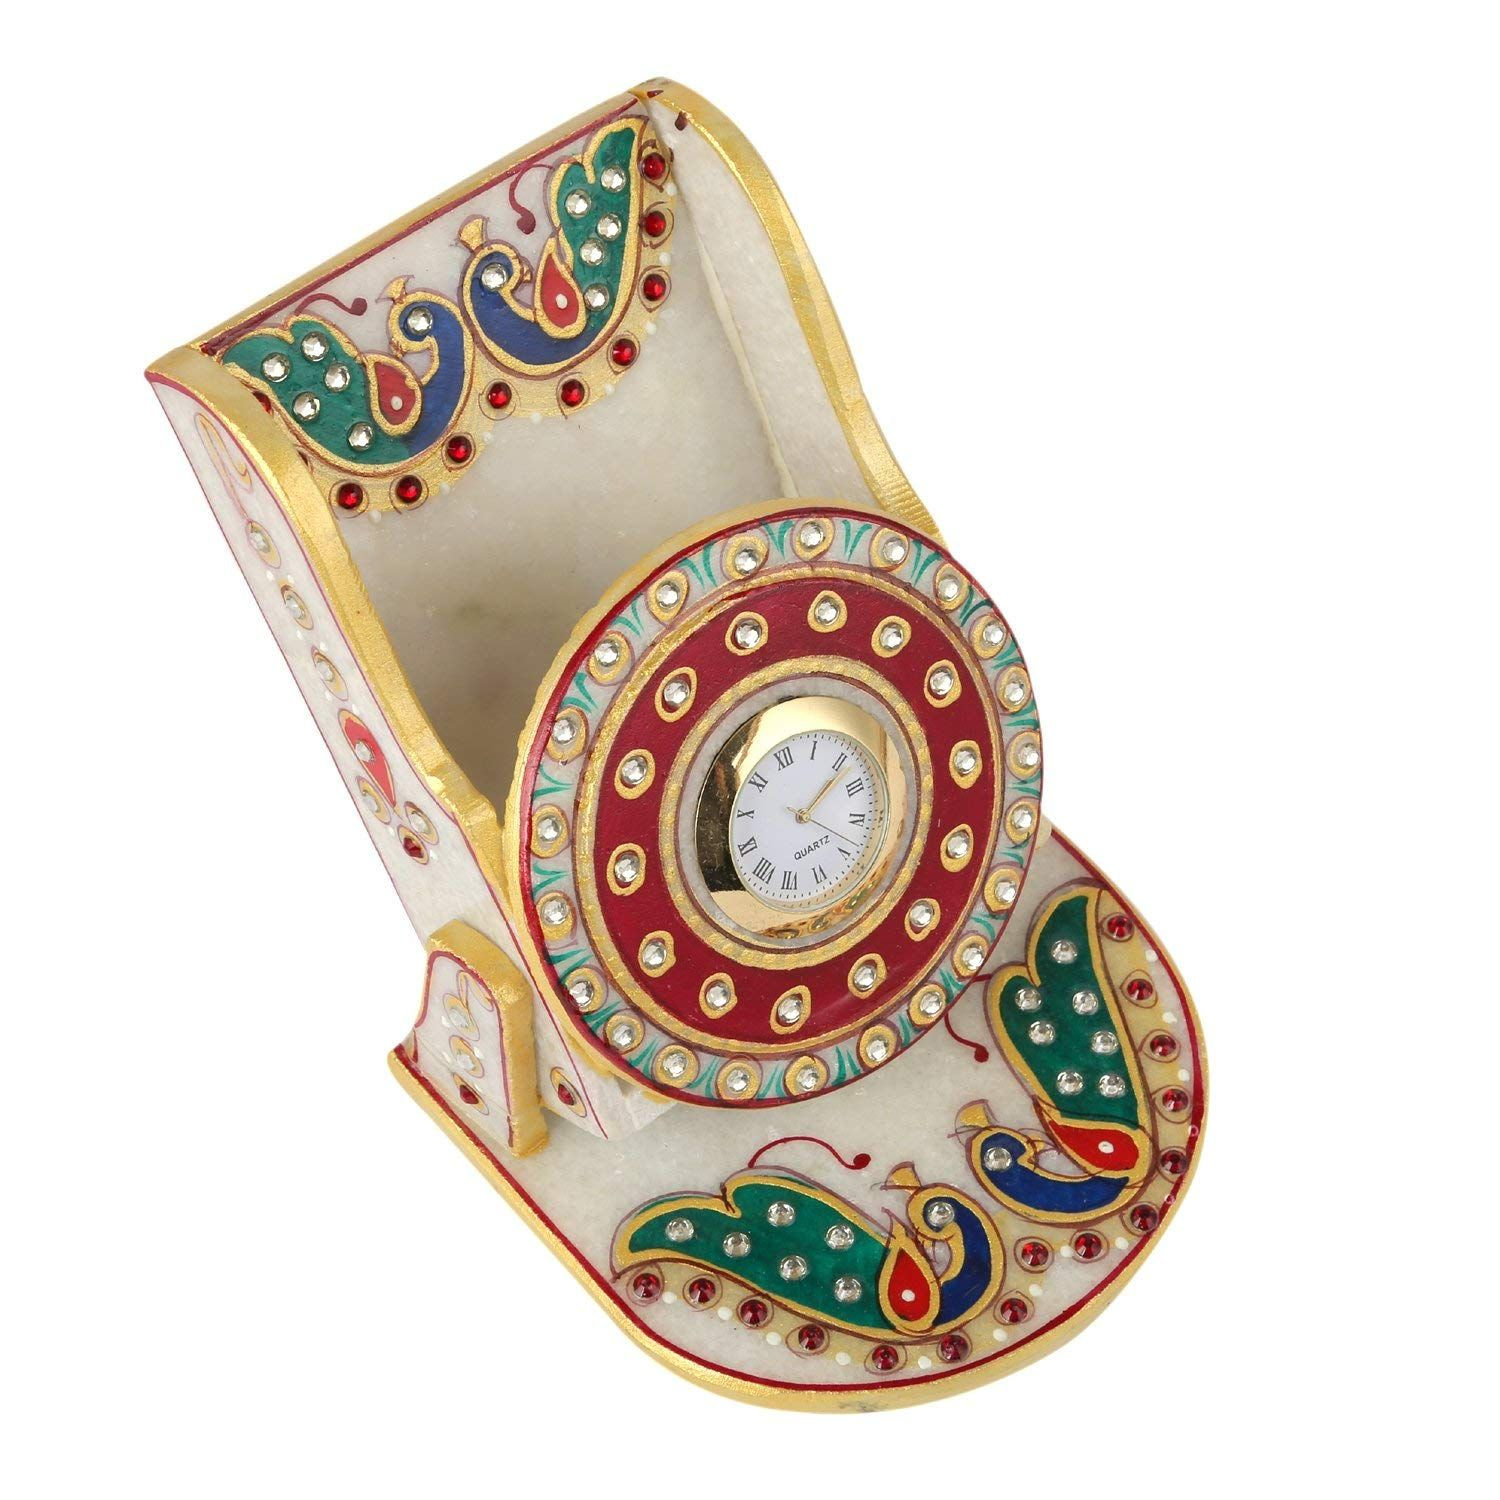 Buy Aatm Desktop Marble Jaipuri Print Watch For Office Home With Pen Stand Online At Low Prices In India Amazon Printed Watches Home Office Corporate Gifts